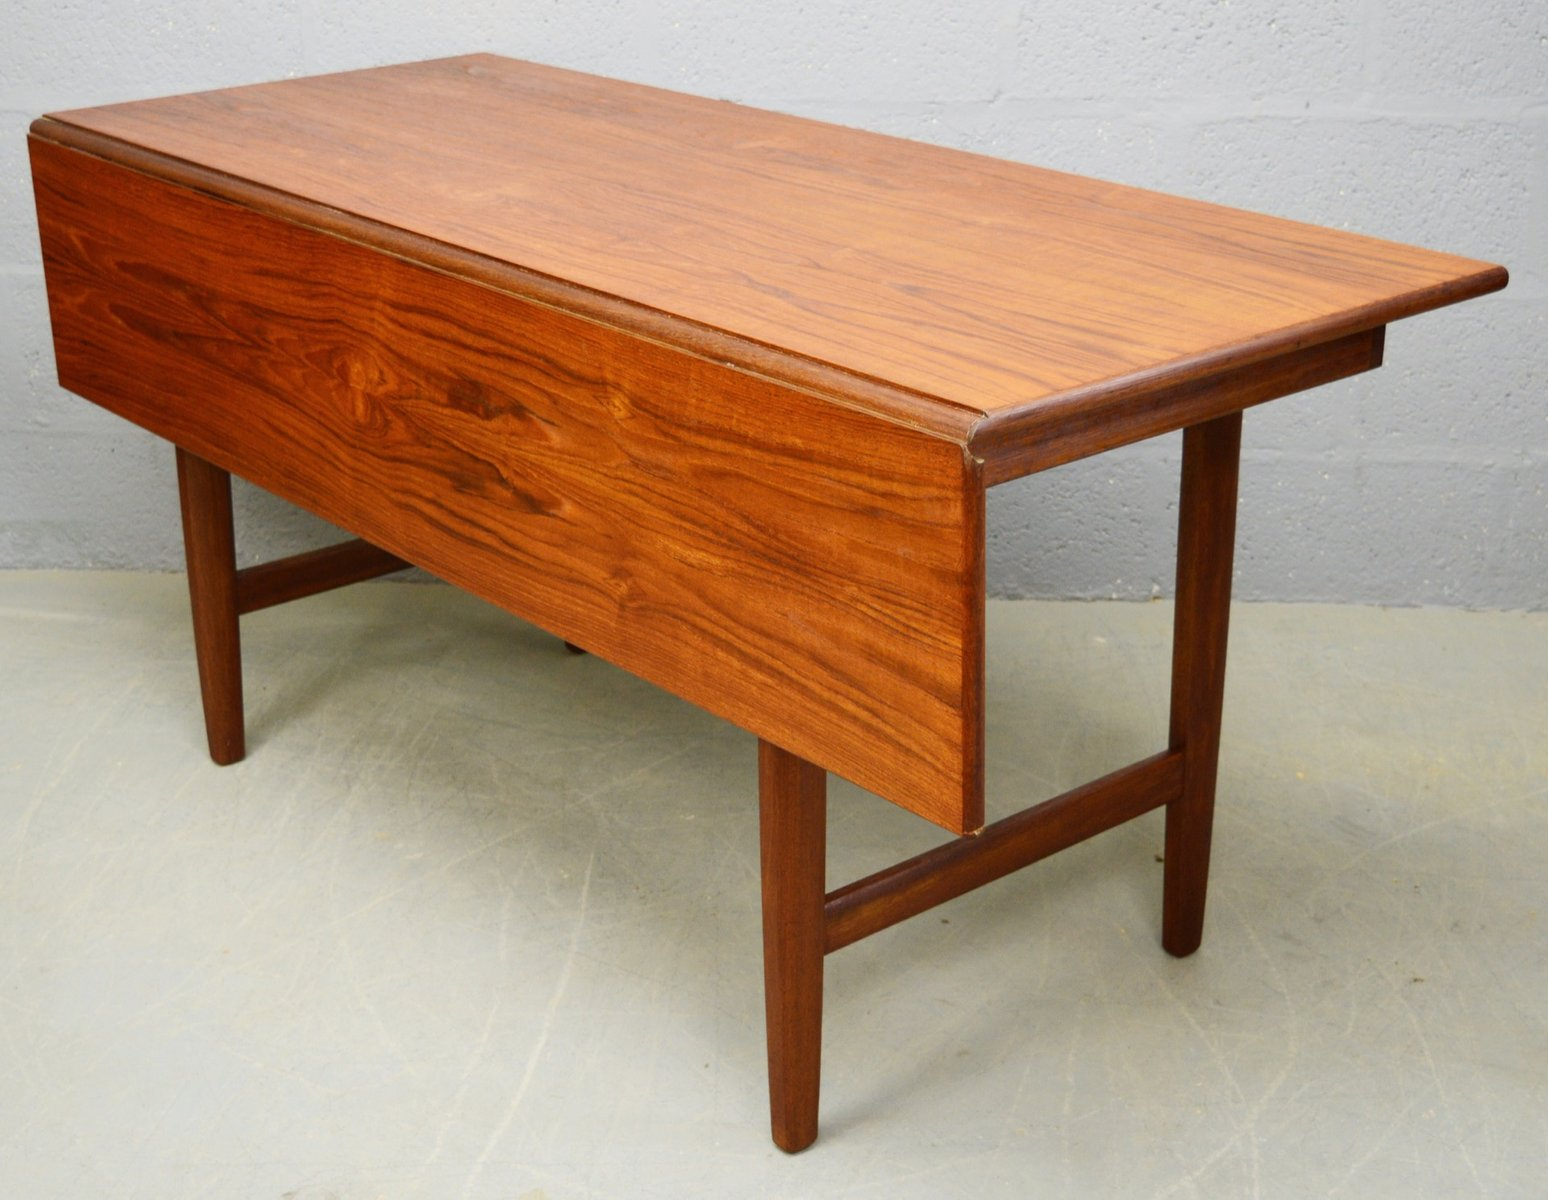 Exceptional Mid Century Teak Drop Leaf Table 6. $1,074.00. Price Per Piece